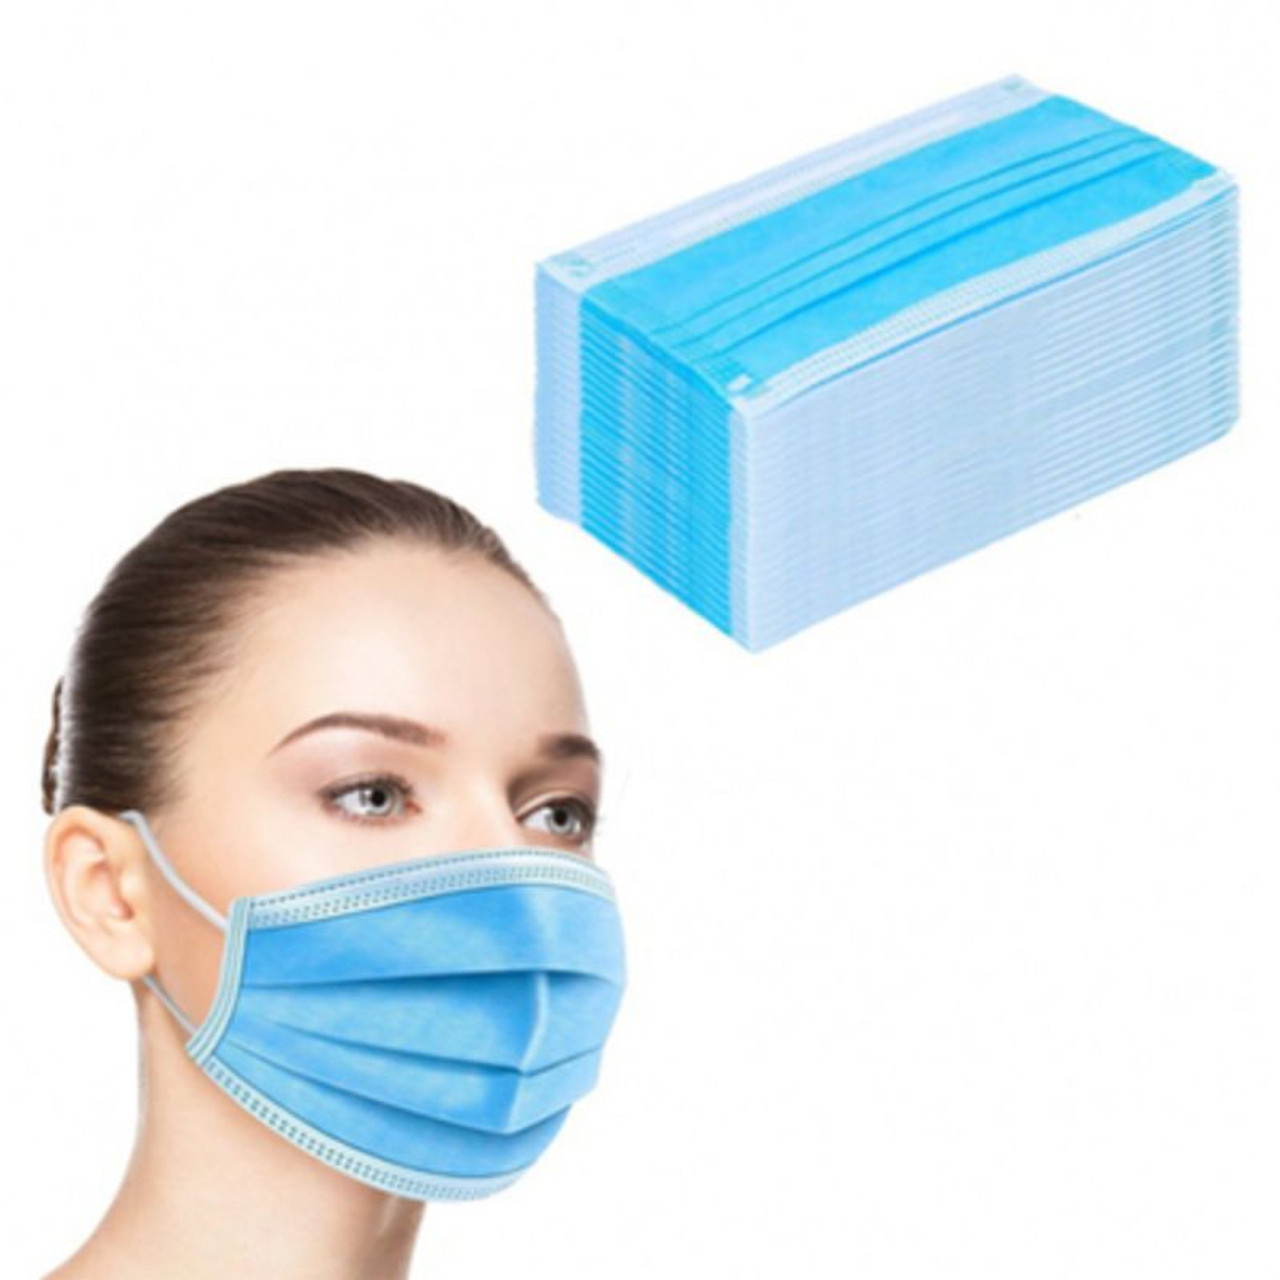 Disposable Non-Medical 3-Ply Face Masks - 100 Pack